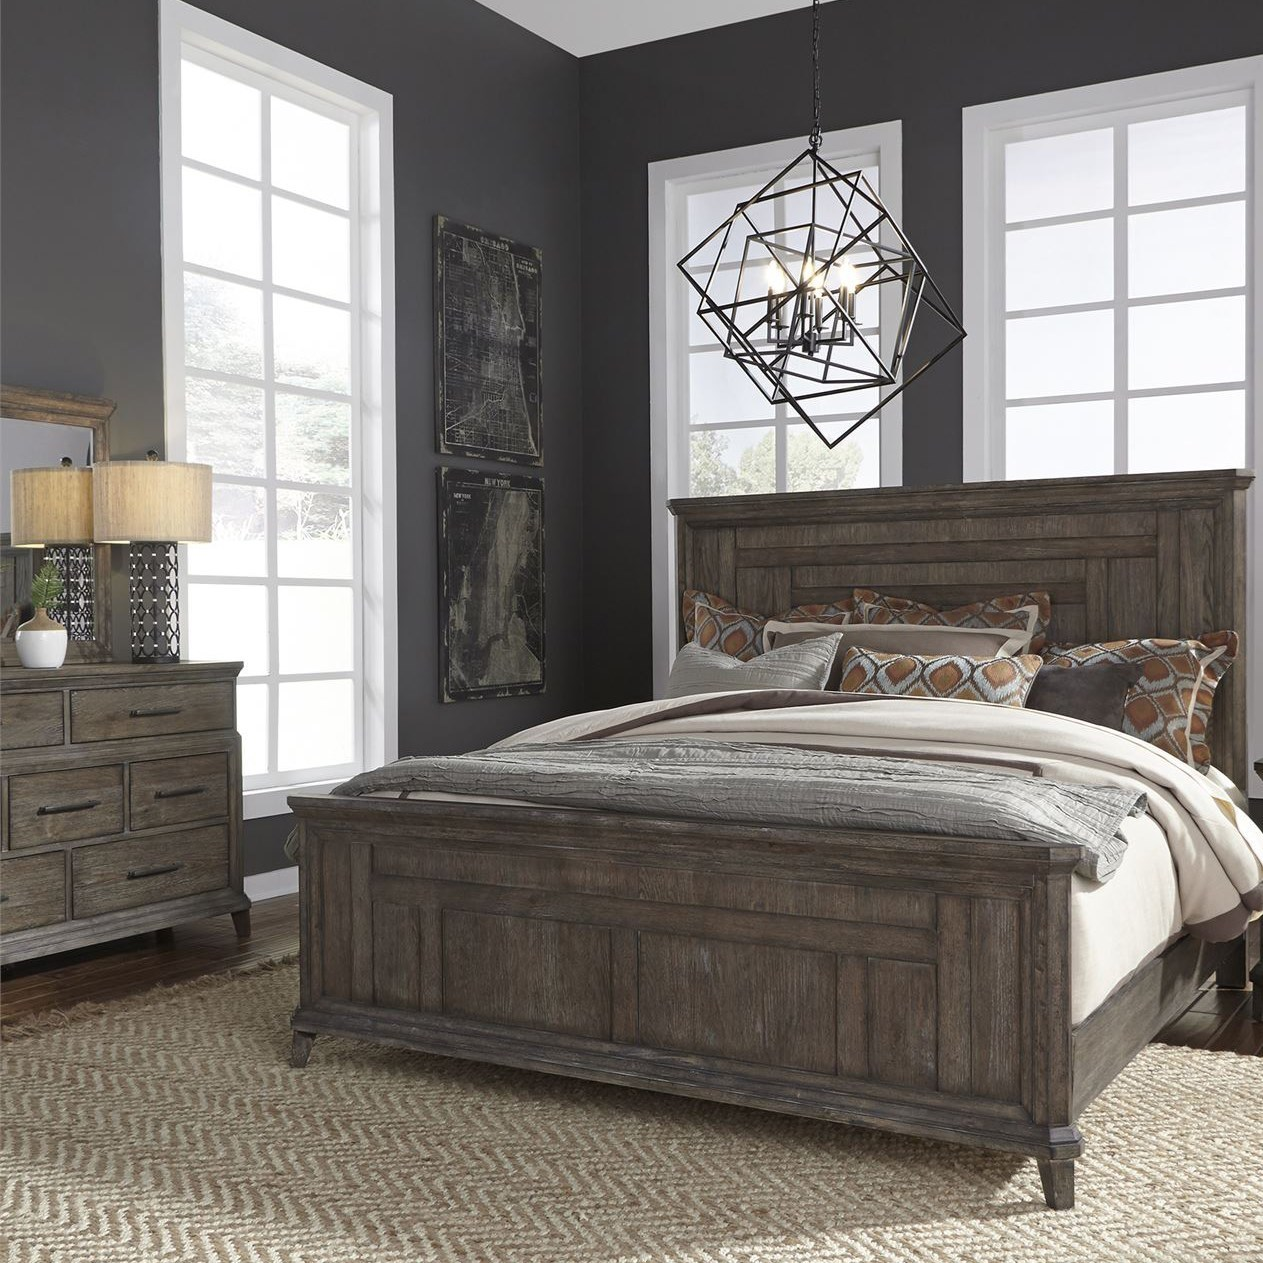 Artisan Prairie King Bedroom Group by Liberty Furniture at Furniture and ApplianceMart